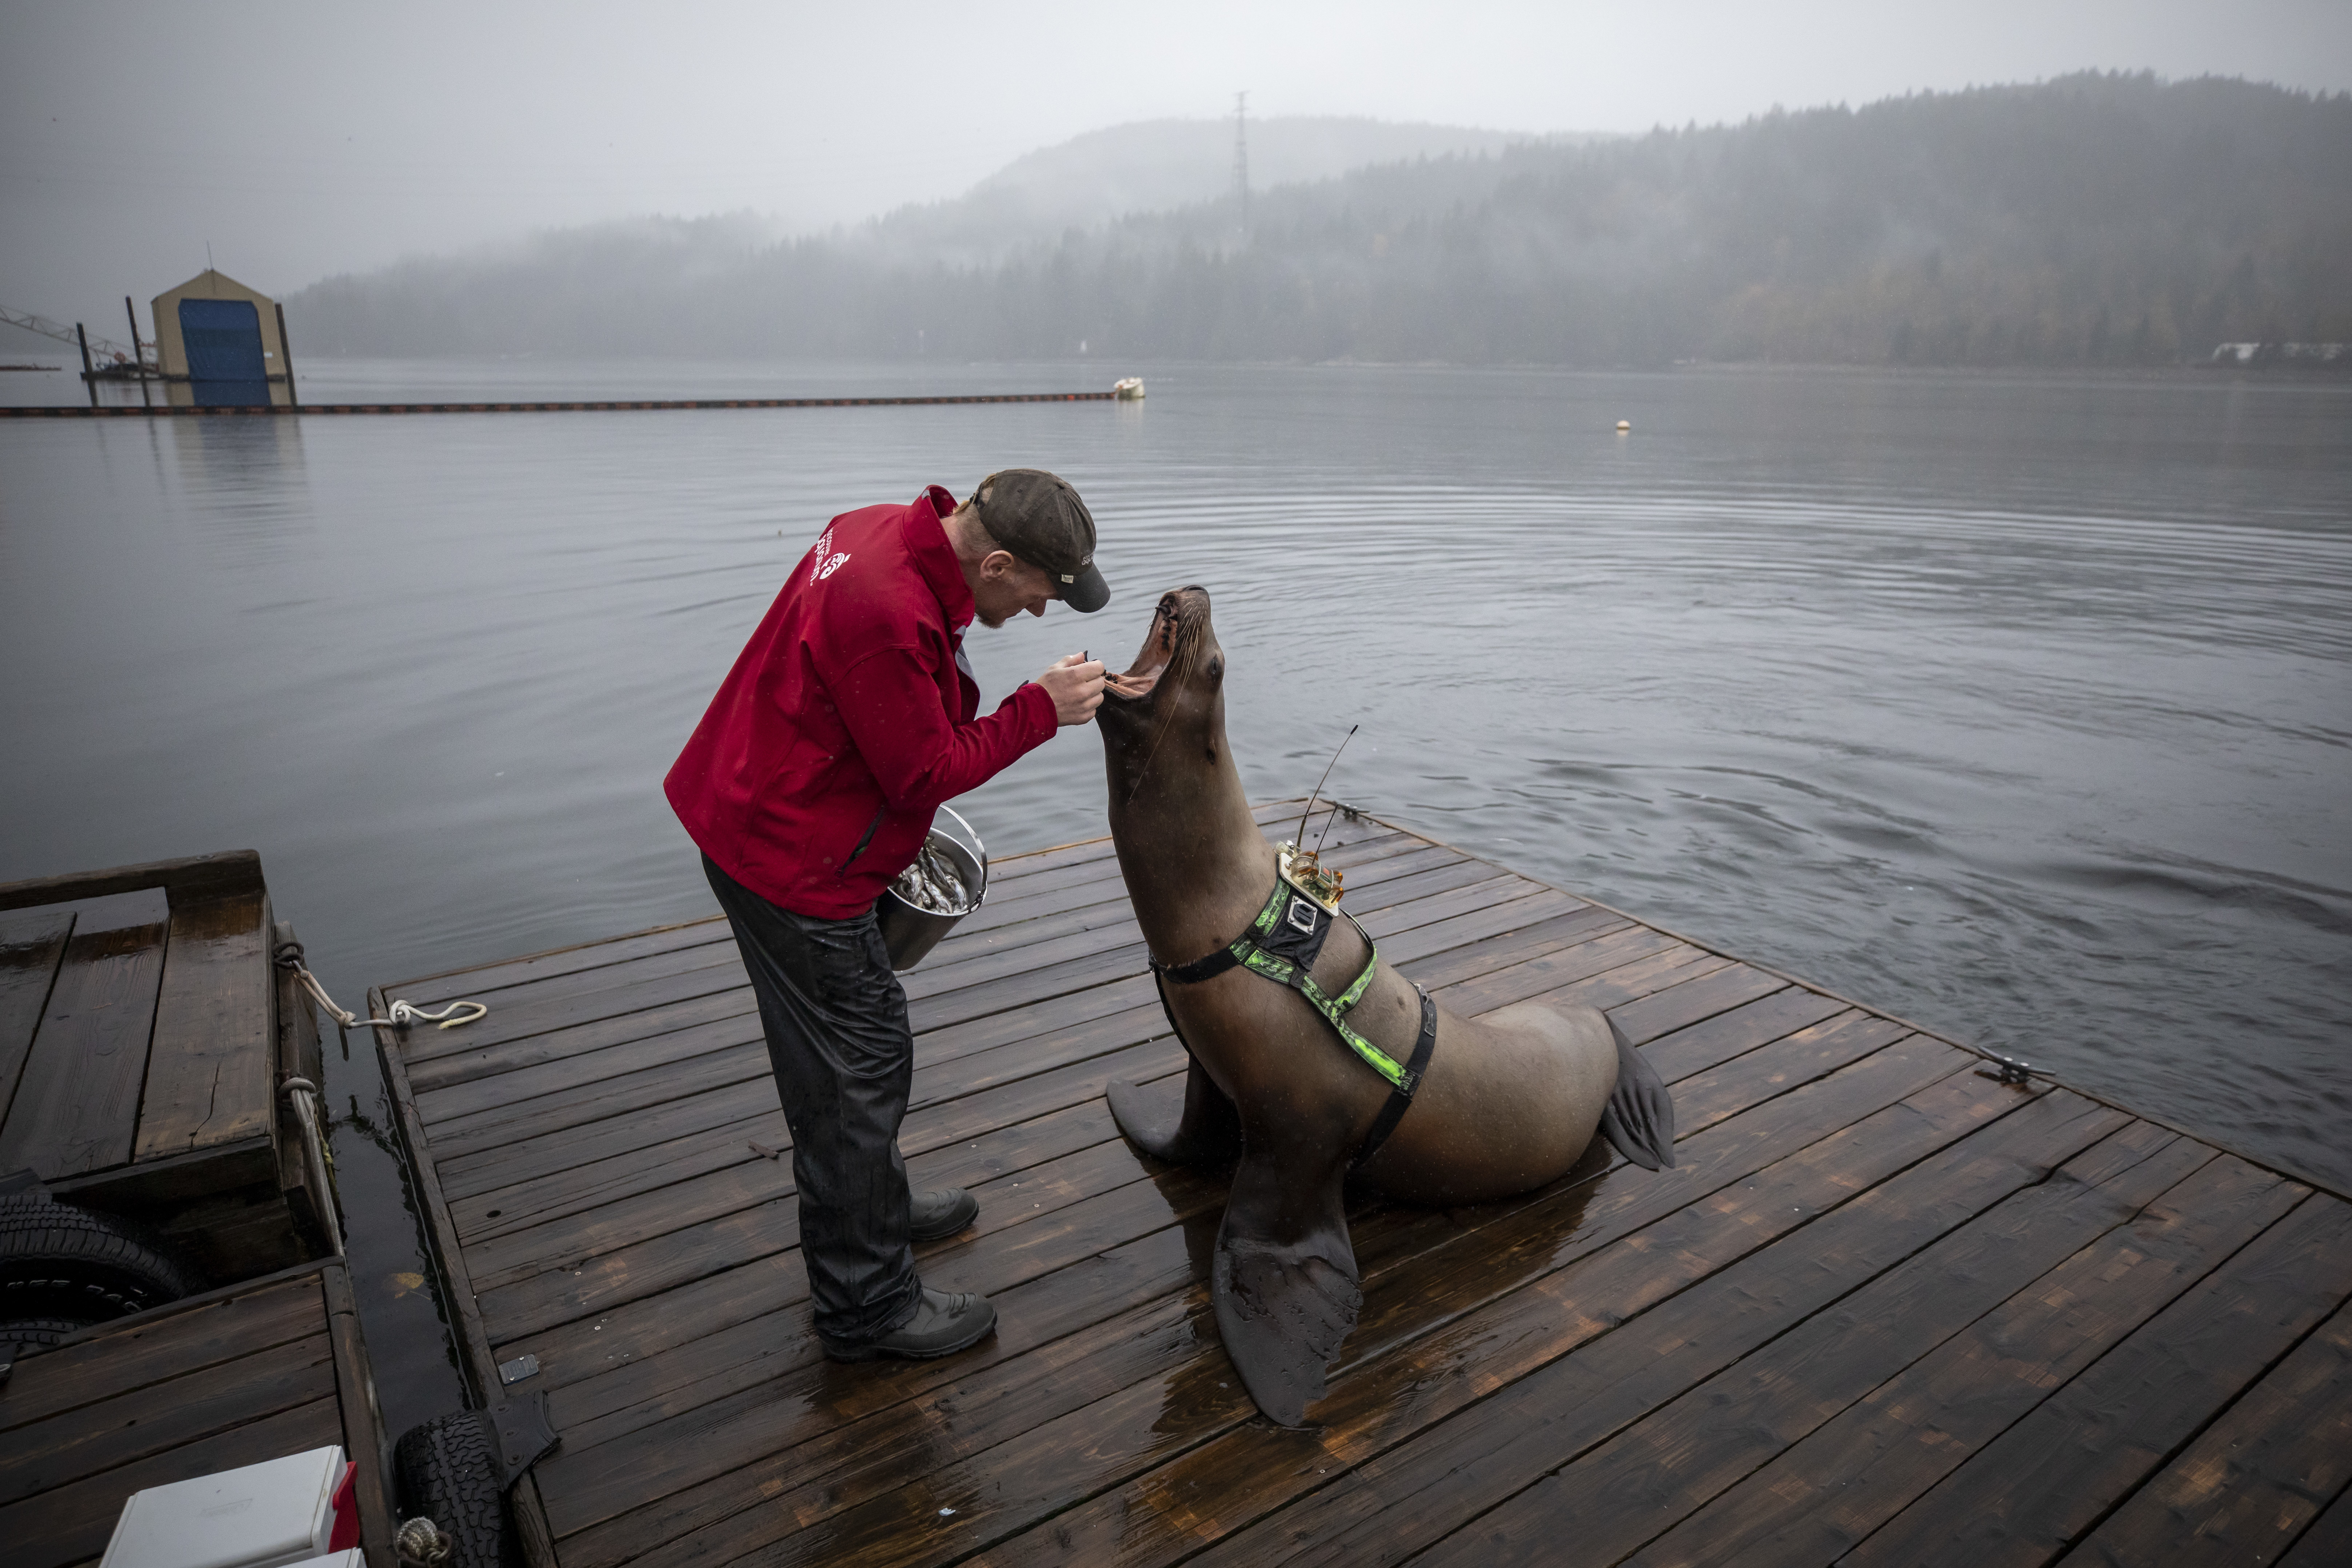 Nigel Waller, a senior marine mammal trainer, with a Steller sea lion at UBC's Open Water Research Centre in Port Moody, B.C. on Oct. 7, 2019.  (Ben Nelms/CBC)